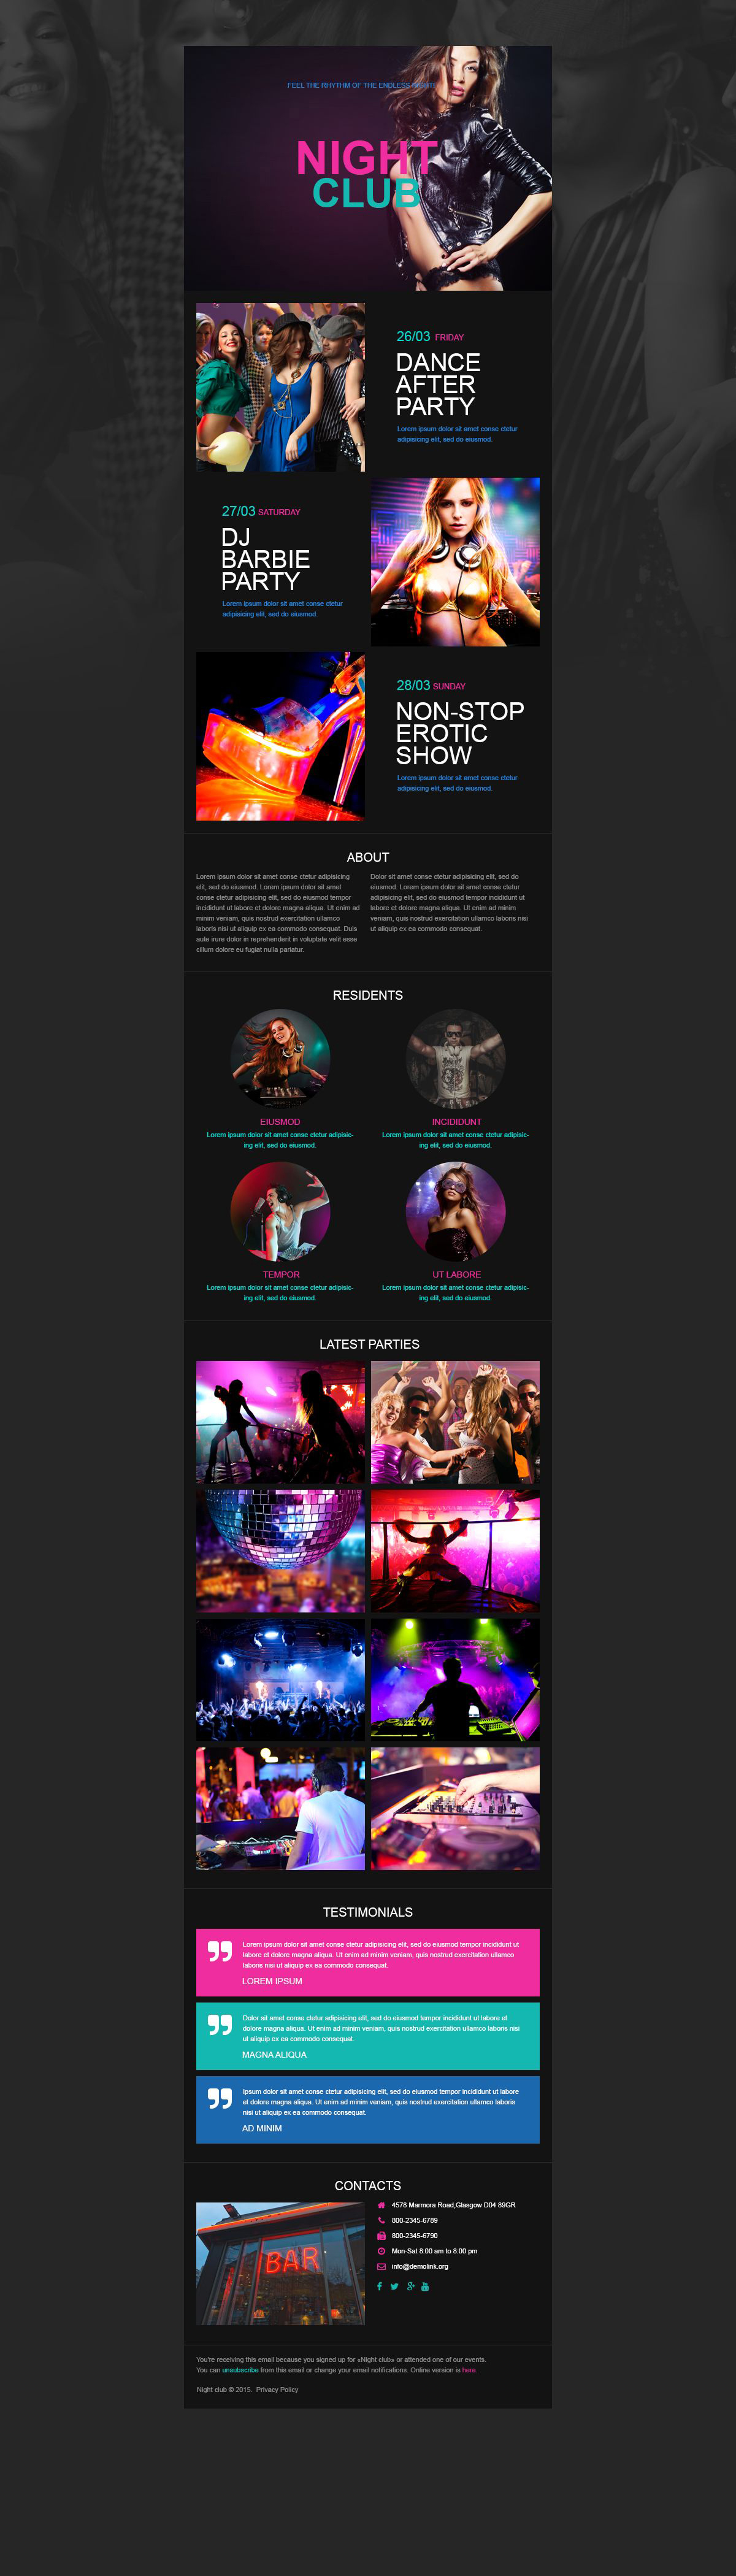 The Night Club Newsletter Template Design 52966, one of the best Newsletter templates of its kind (night club, most popular), also known as night club Newsletter template, music Newsletter template, dances Newsletter template, dancers Newsletter template, entertainment Newsletter template, joy Newsletter template, energy Newsletter template, free drinks Newsletter template, tickets Newsletter template, party Newsletter template, deejays Newsletter template, dj Newsletter template, events Newsletter template, beats Newsletter template, disks Newsletter template, songs Newsletter template, tunes Newsletter template, rhythms Newsletter template, gallery Newsletter template, photos Newsletter template, pictures Newsletter template, guests Newsletter template, participants Newsletter template, interview Newsletter template, stars Newsletter template, artists Newsletter template, funs Newsletter template, booking Newsletter template, mob Newsletter template, glamour girls Newsletter template, party Newsletter template, MC cockt and related with night club, music, dances, dancers, entertainment, joy, energy, free drinks, tickets, party, deejays, dj, events, beats, disks, songs, tunes, rhythms, gallery, photos, pictures, guests, participants, interview, stars, artists, funs, booking, mob, glamour girls, party, MC cockt, etc.